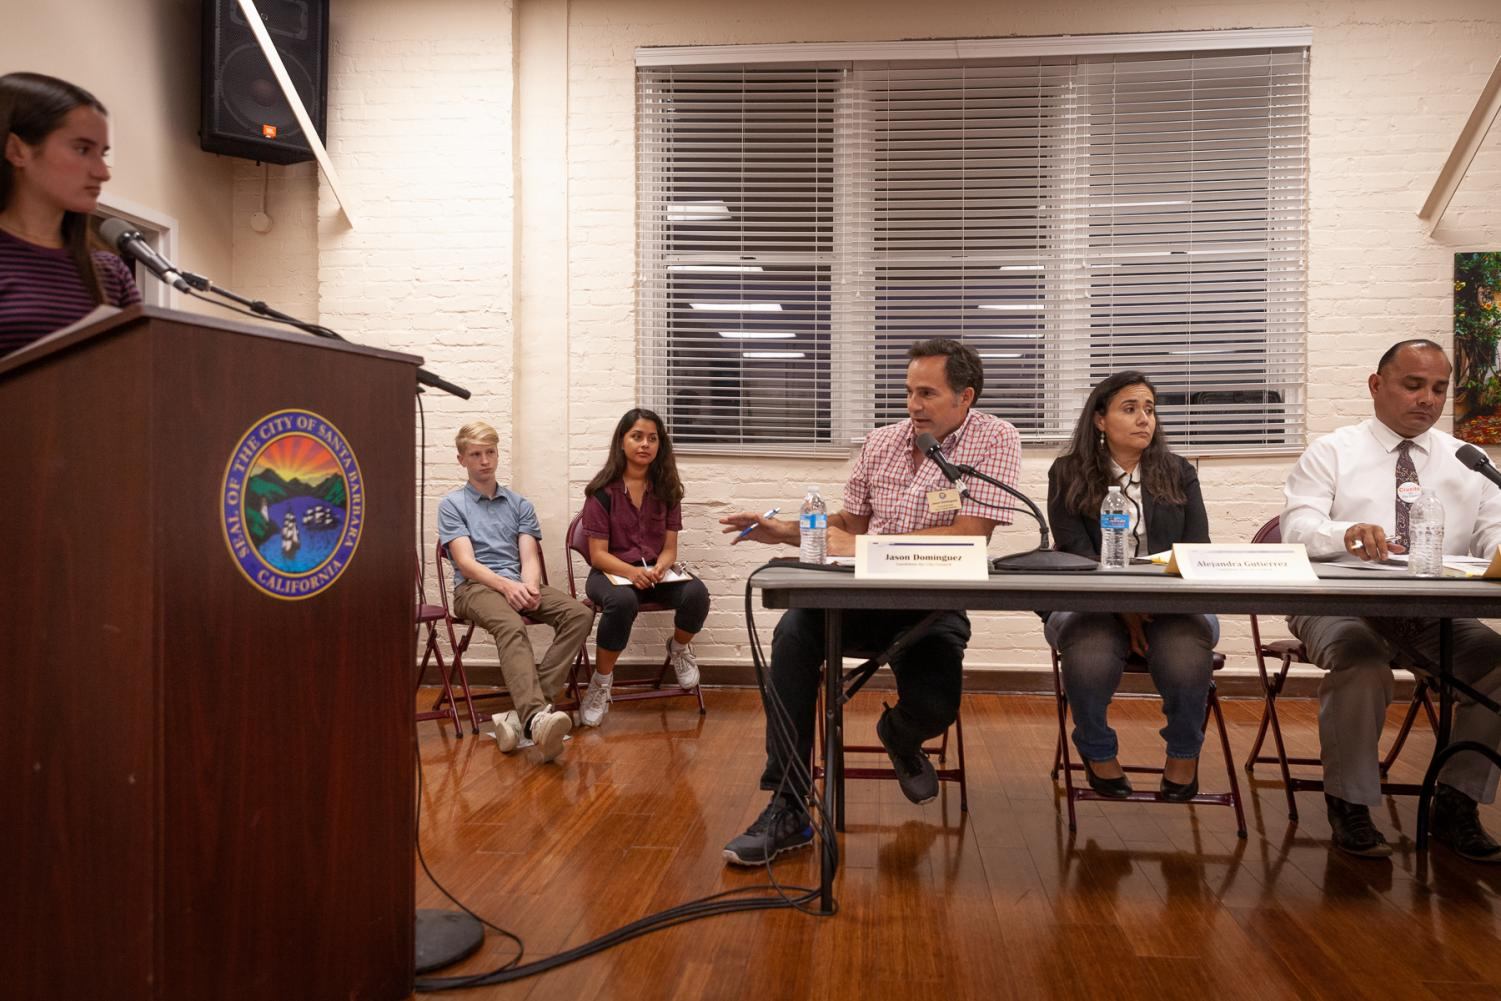 Jason Dominguez talks about solutions to vaping products being targeted towards children Monday, in the Louise Lowry Davis Center in Santa Barbara, Calif.